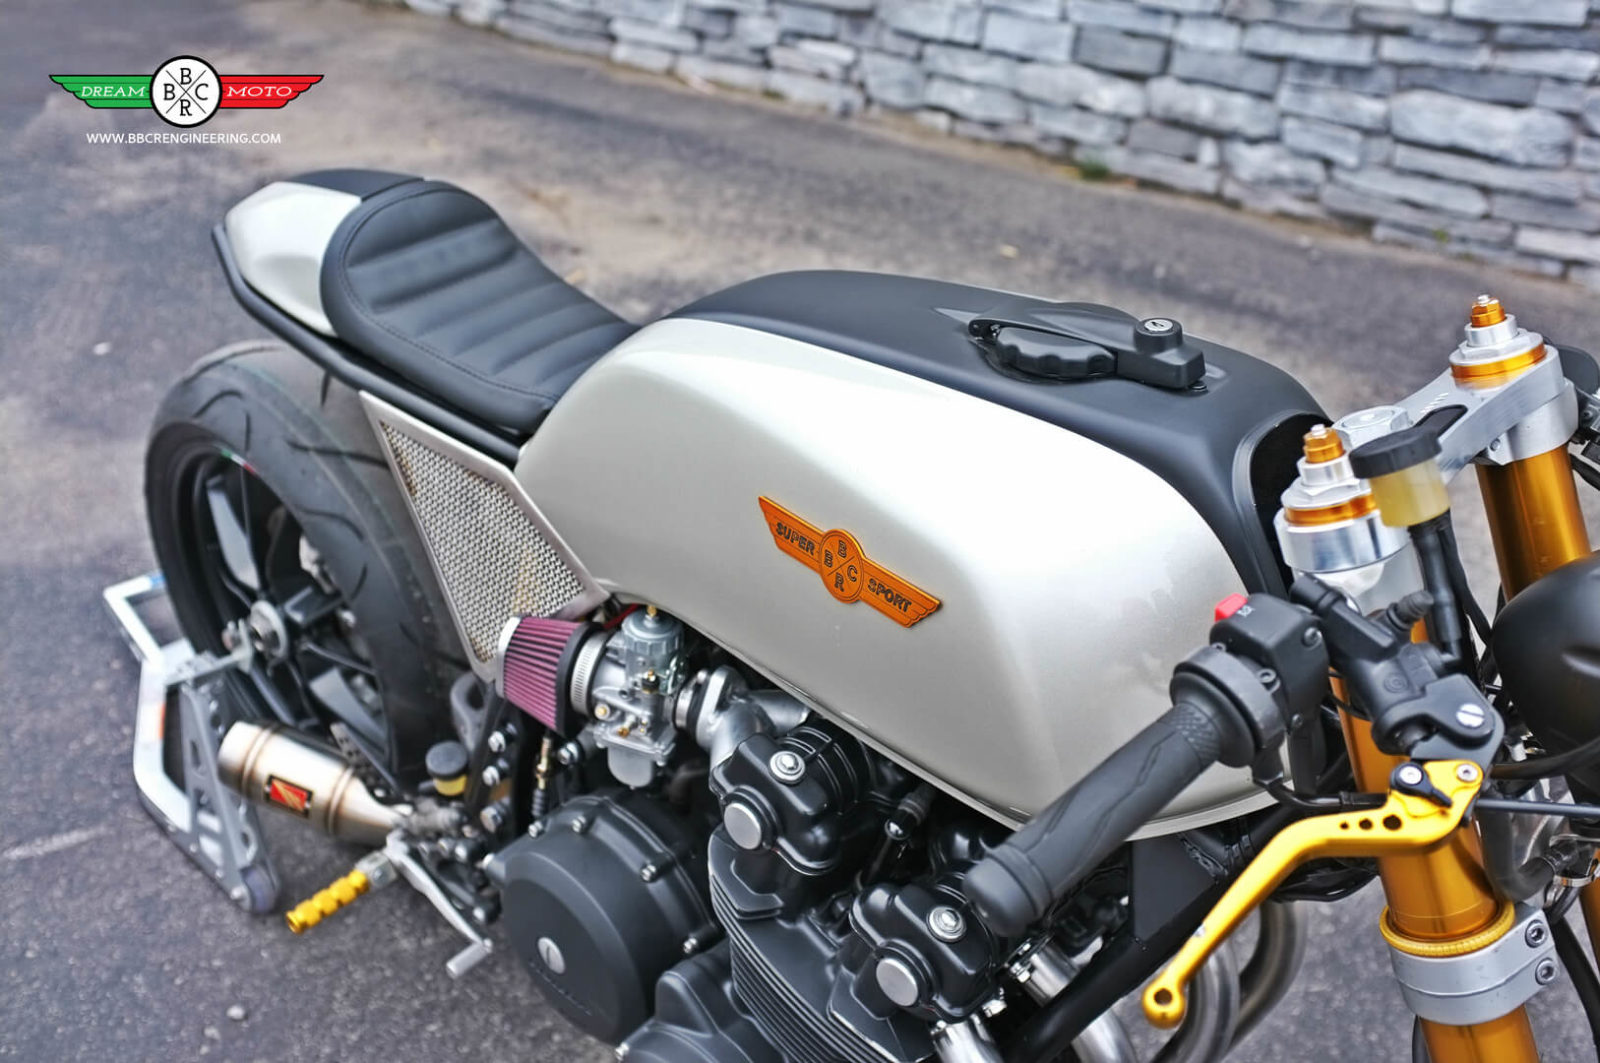 honda cb cafe racer  bbcr engineering